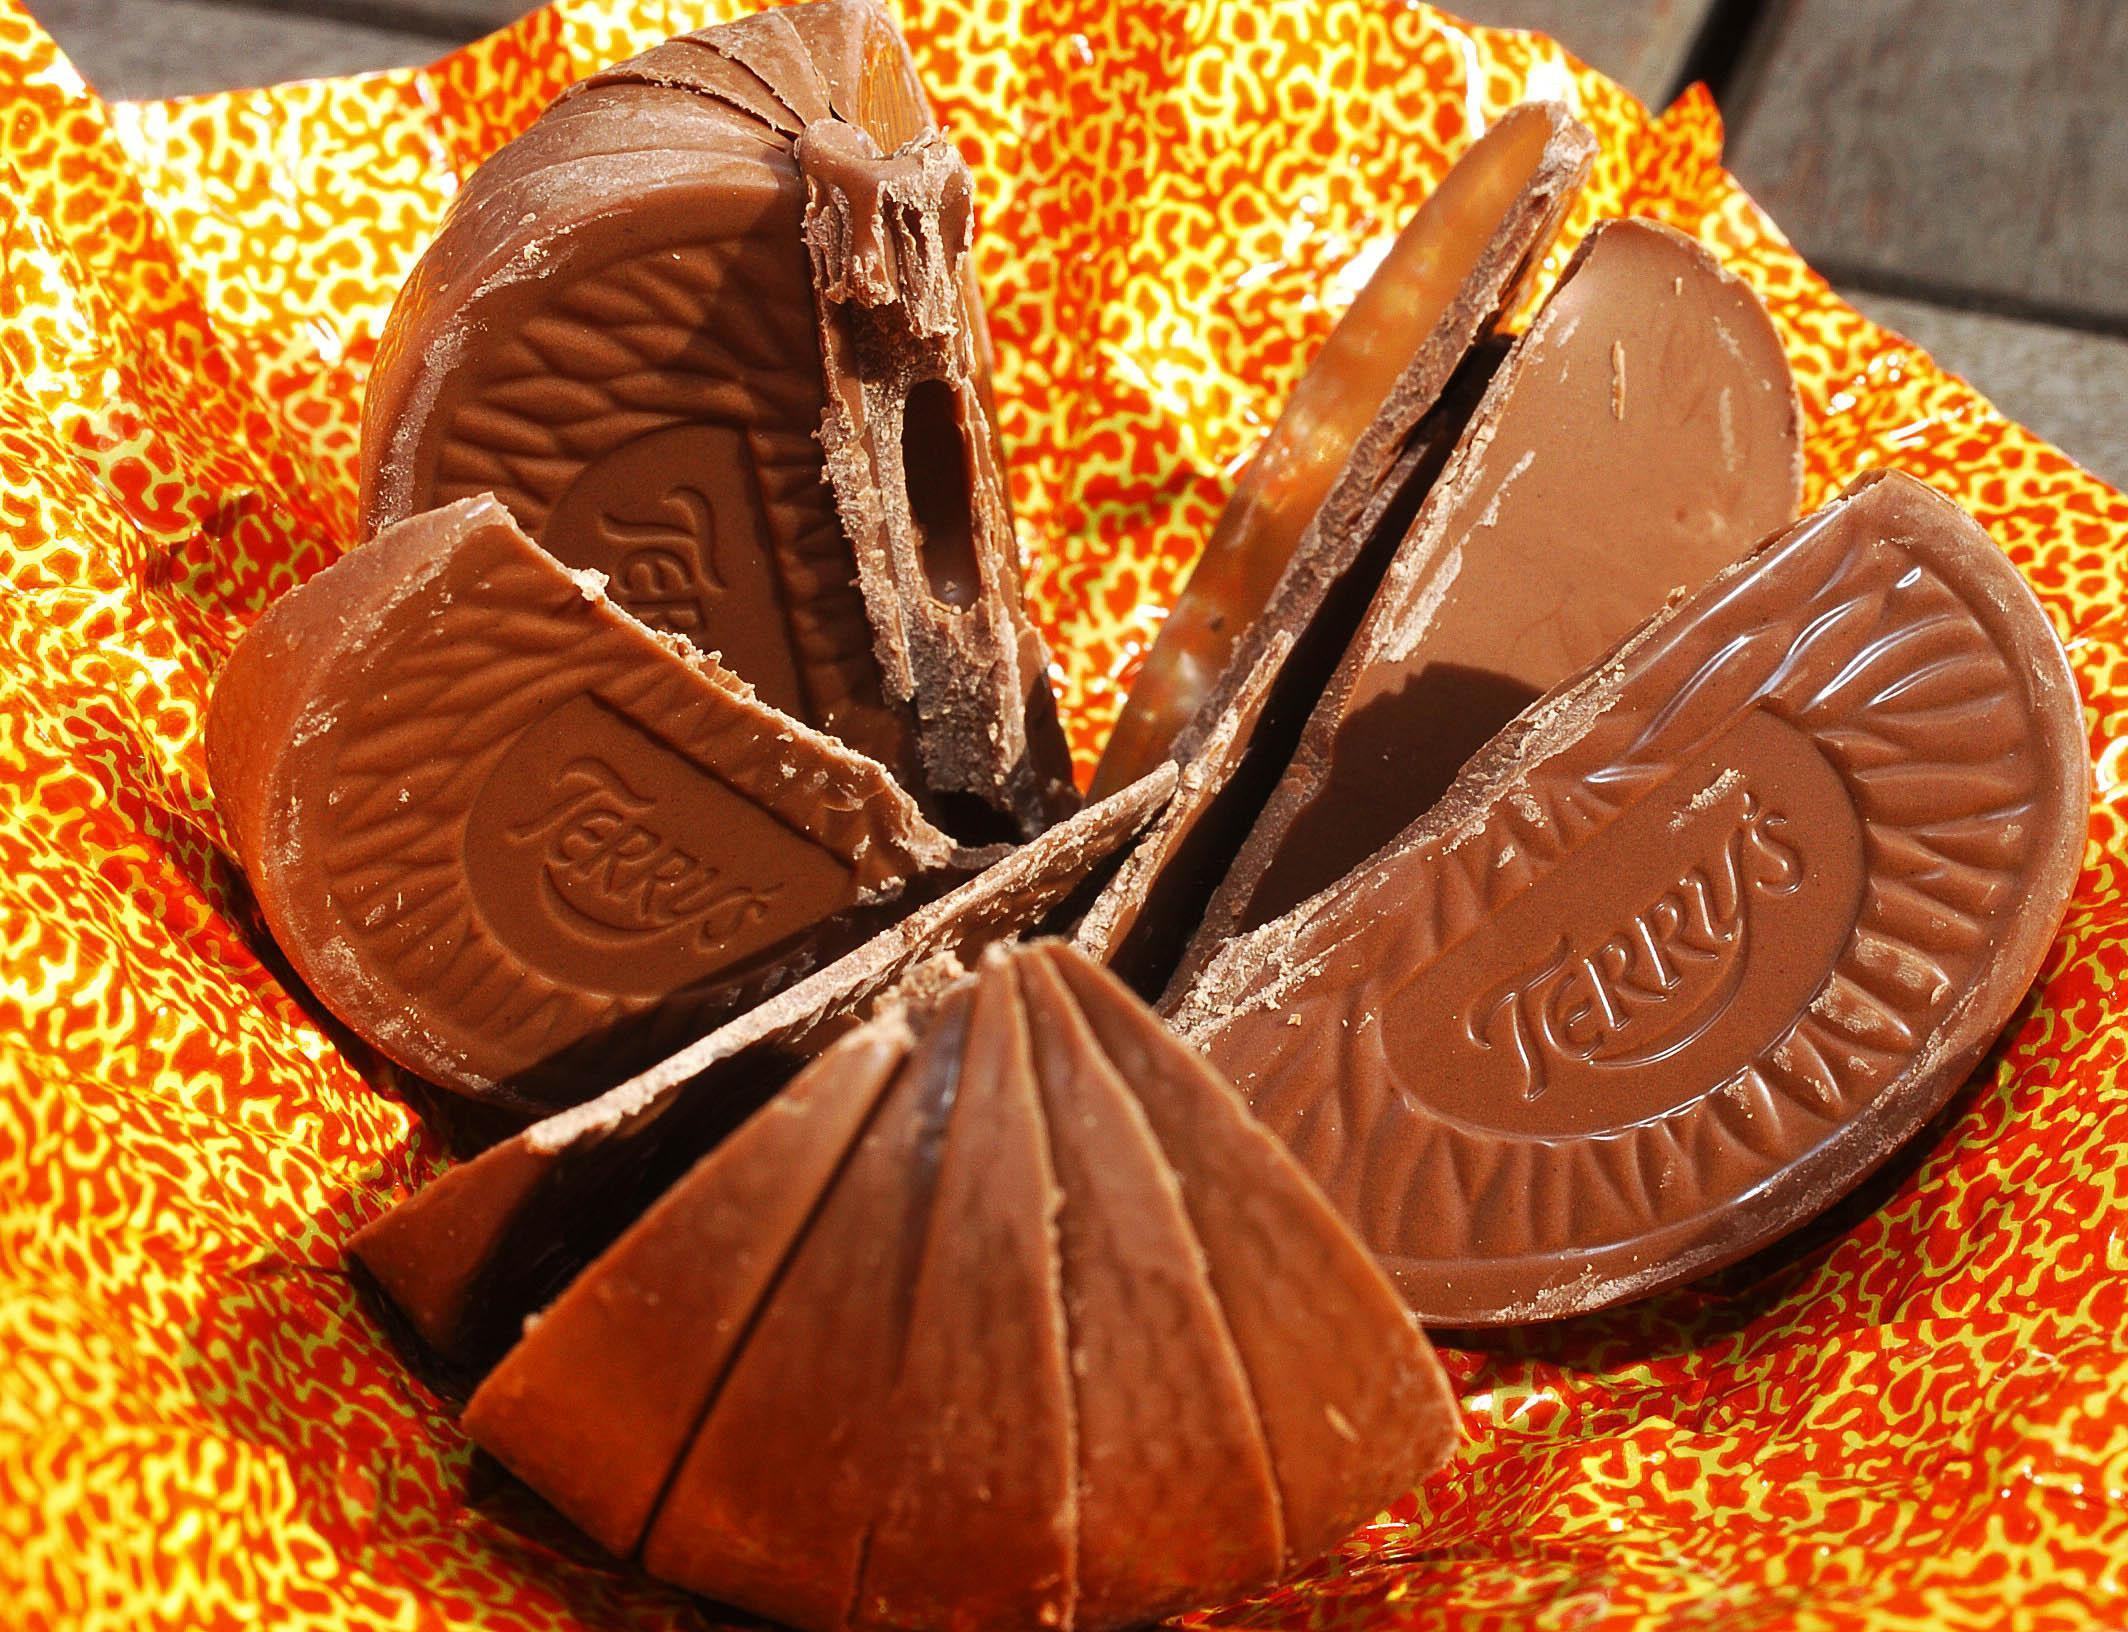 Terry's Chocolate Orange